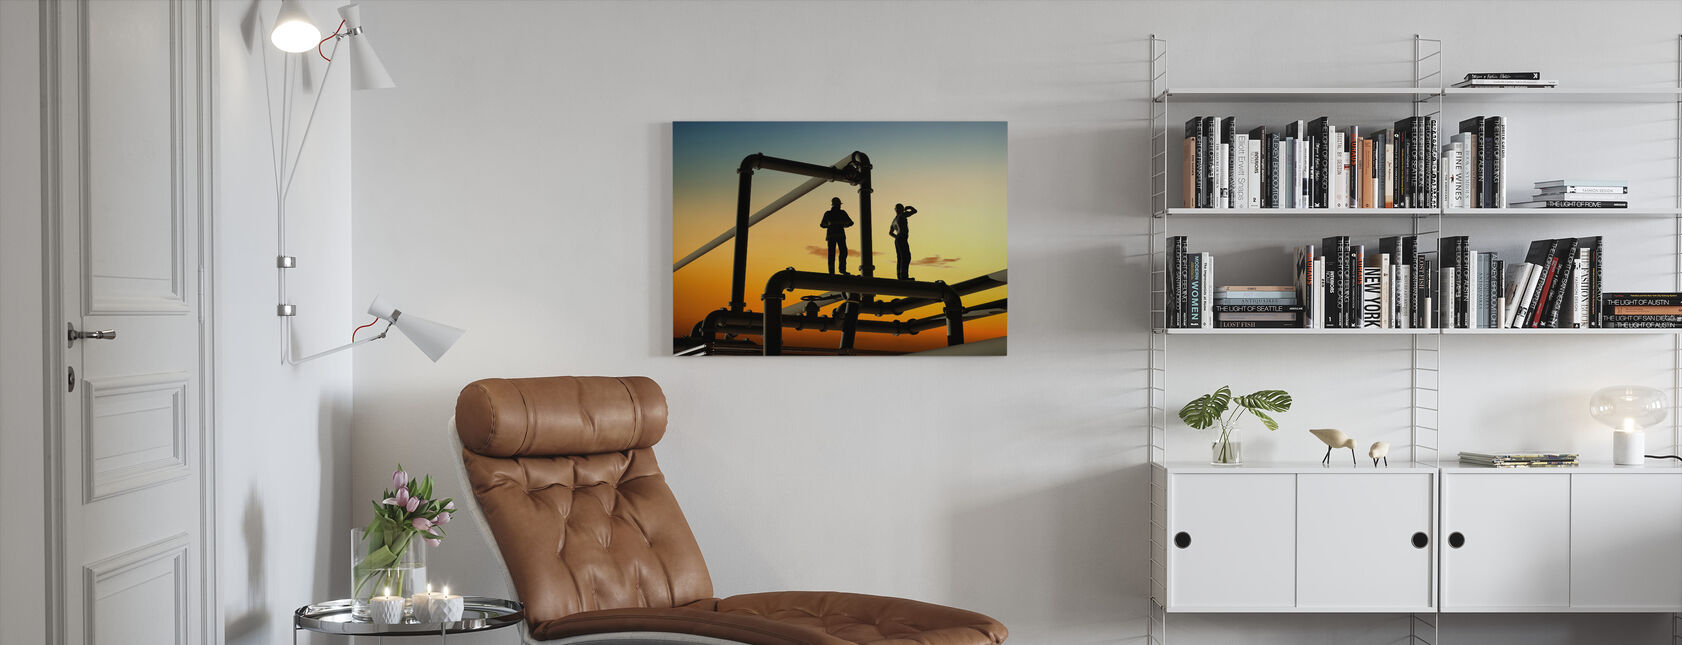 Oil Workers and Pipes in Sunset - Canvas print - Living Room